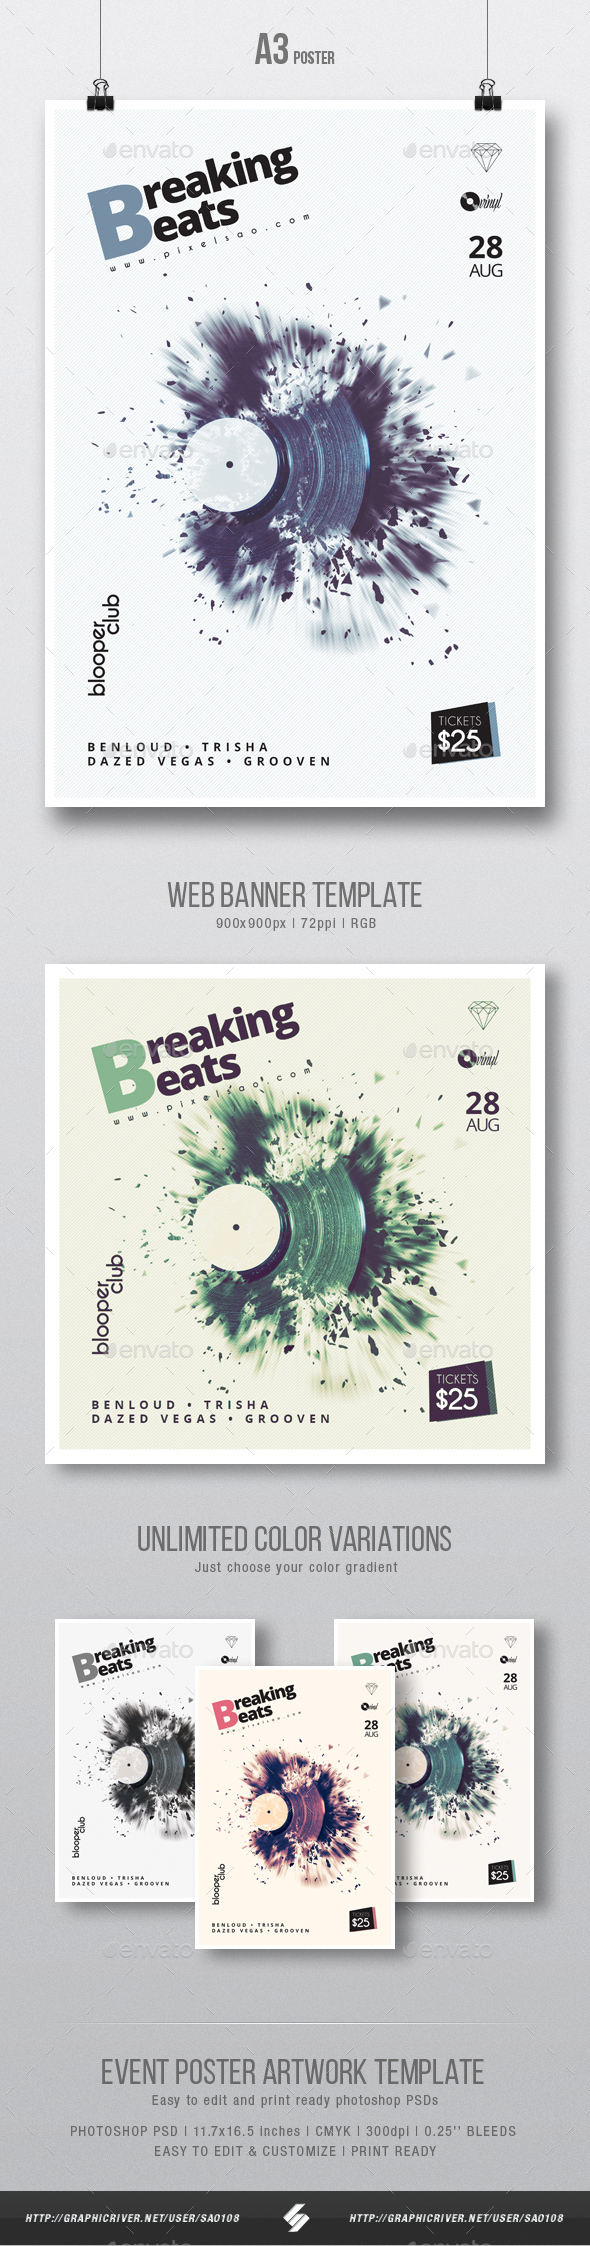 Breaking Beats - Minimal Party Flyer / Poster Template A3 - Clubs & Parties Events